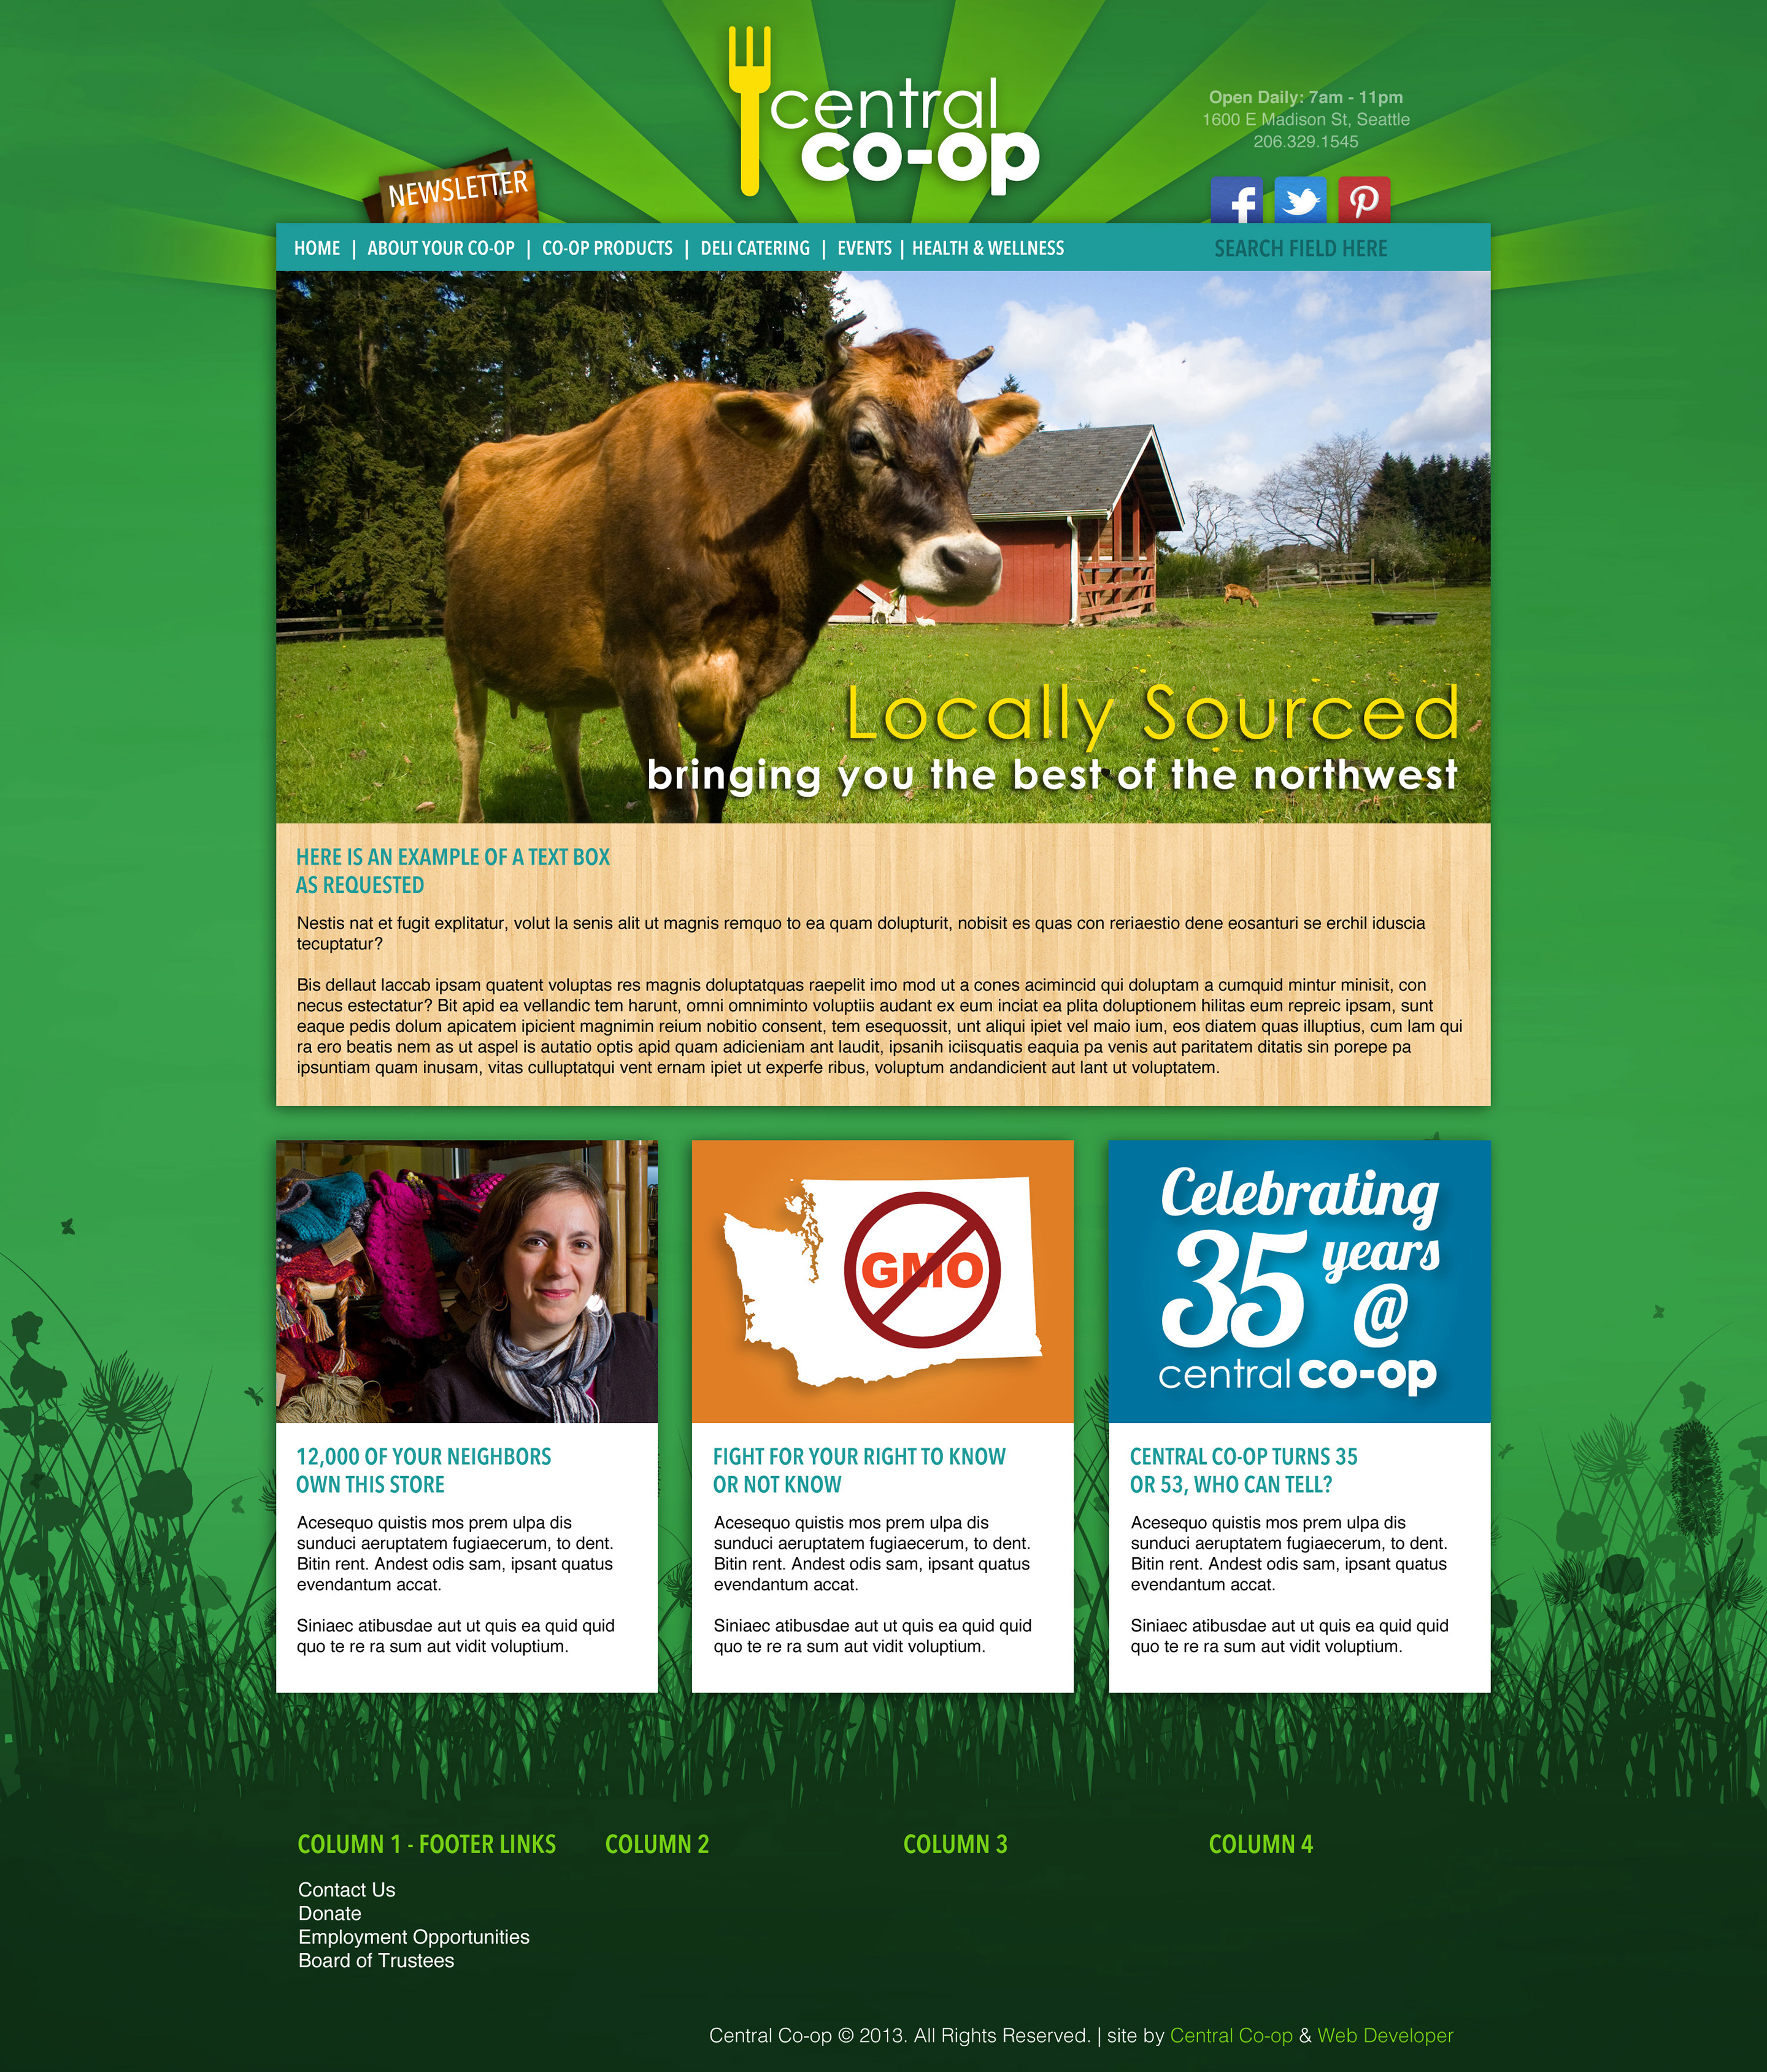 Central Co-op Website Design and Layout